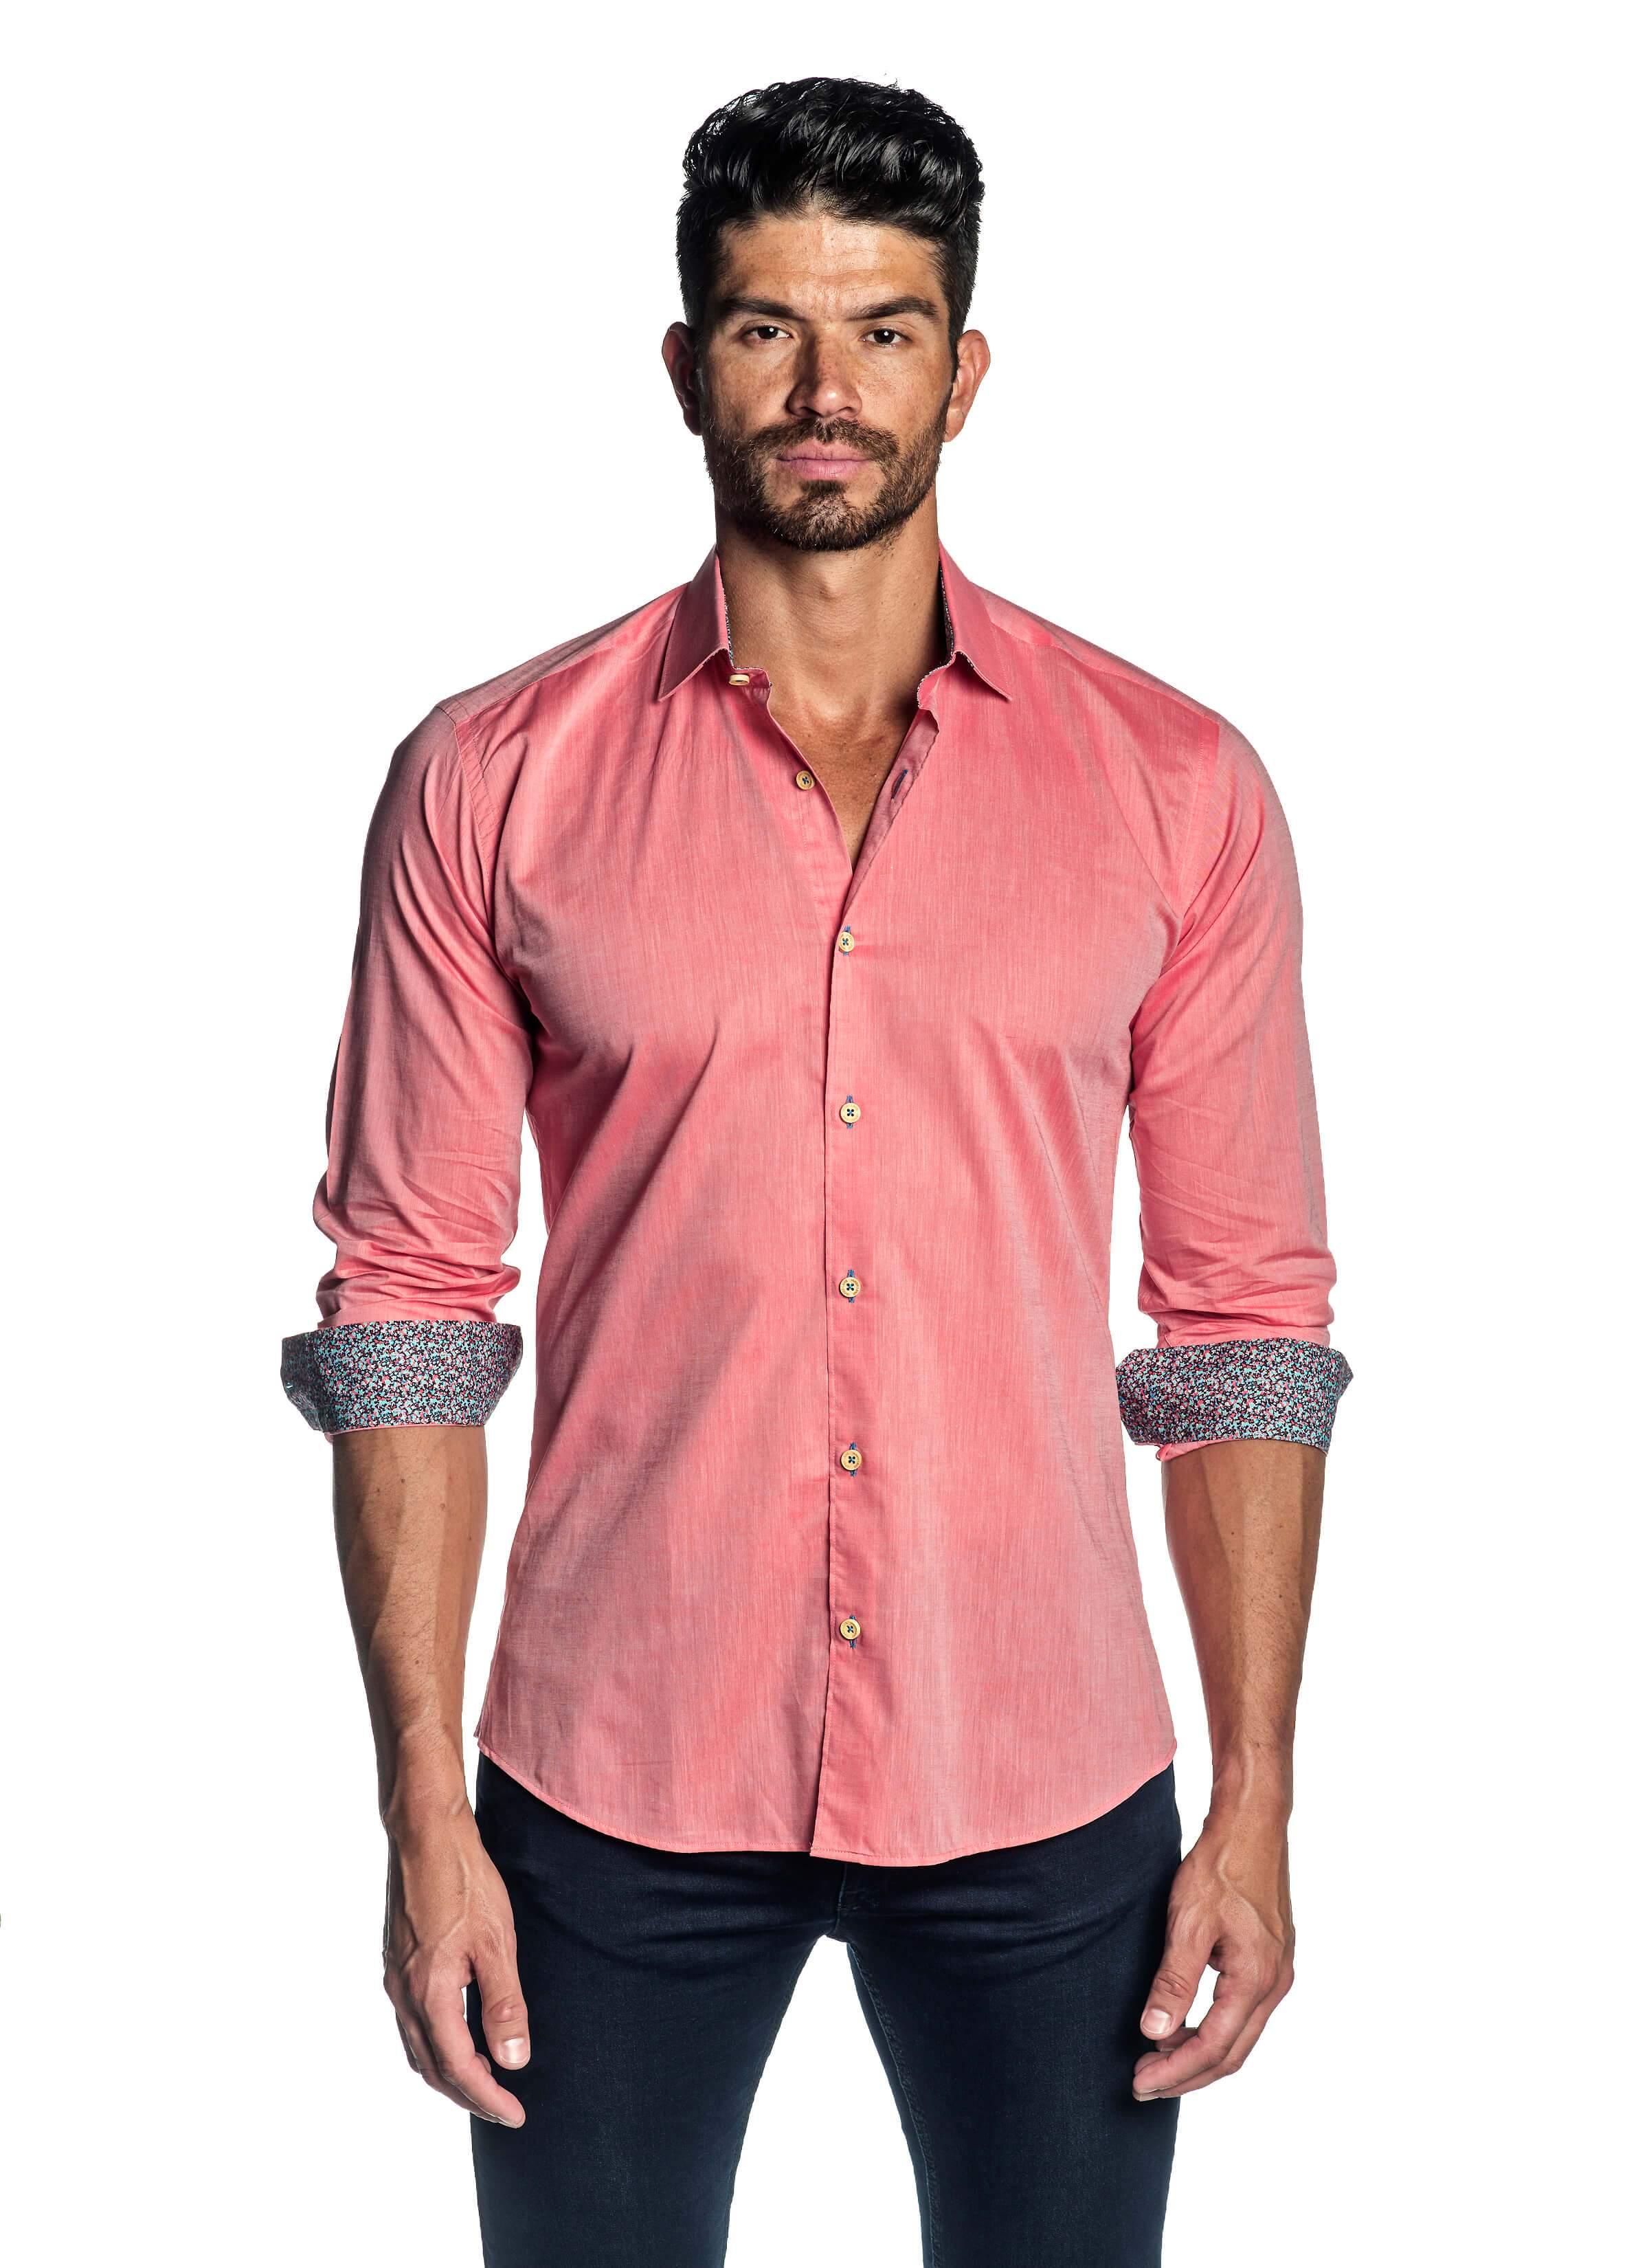 Buy Mens Salmon Solid Shirt With Microprint Trim T 1814 Jared Lang